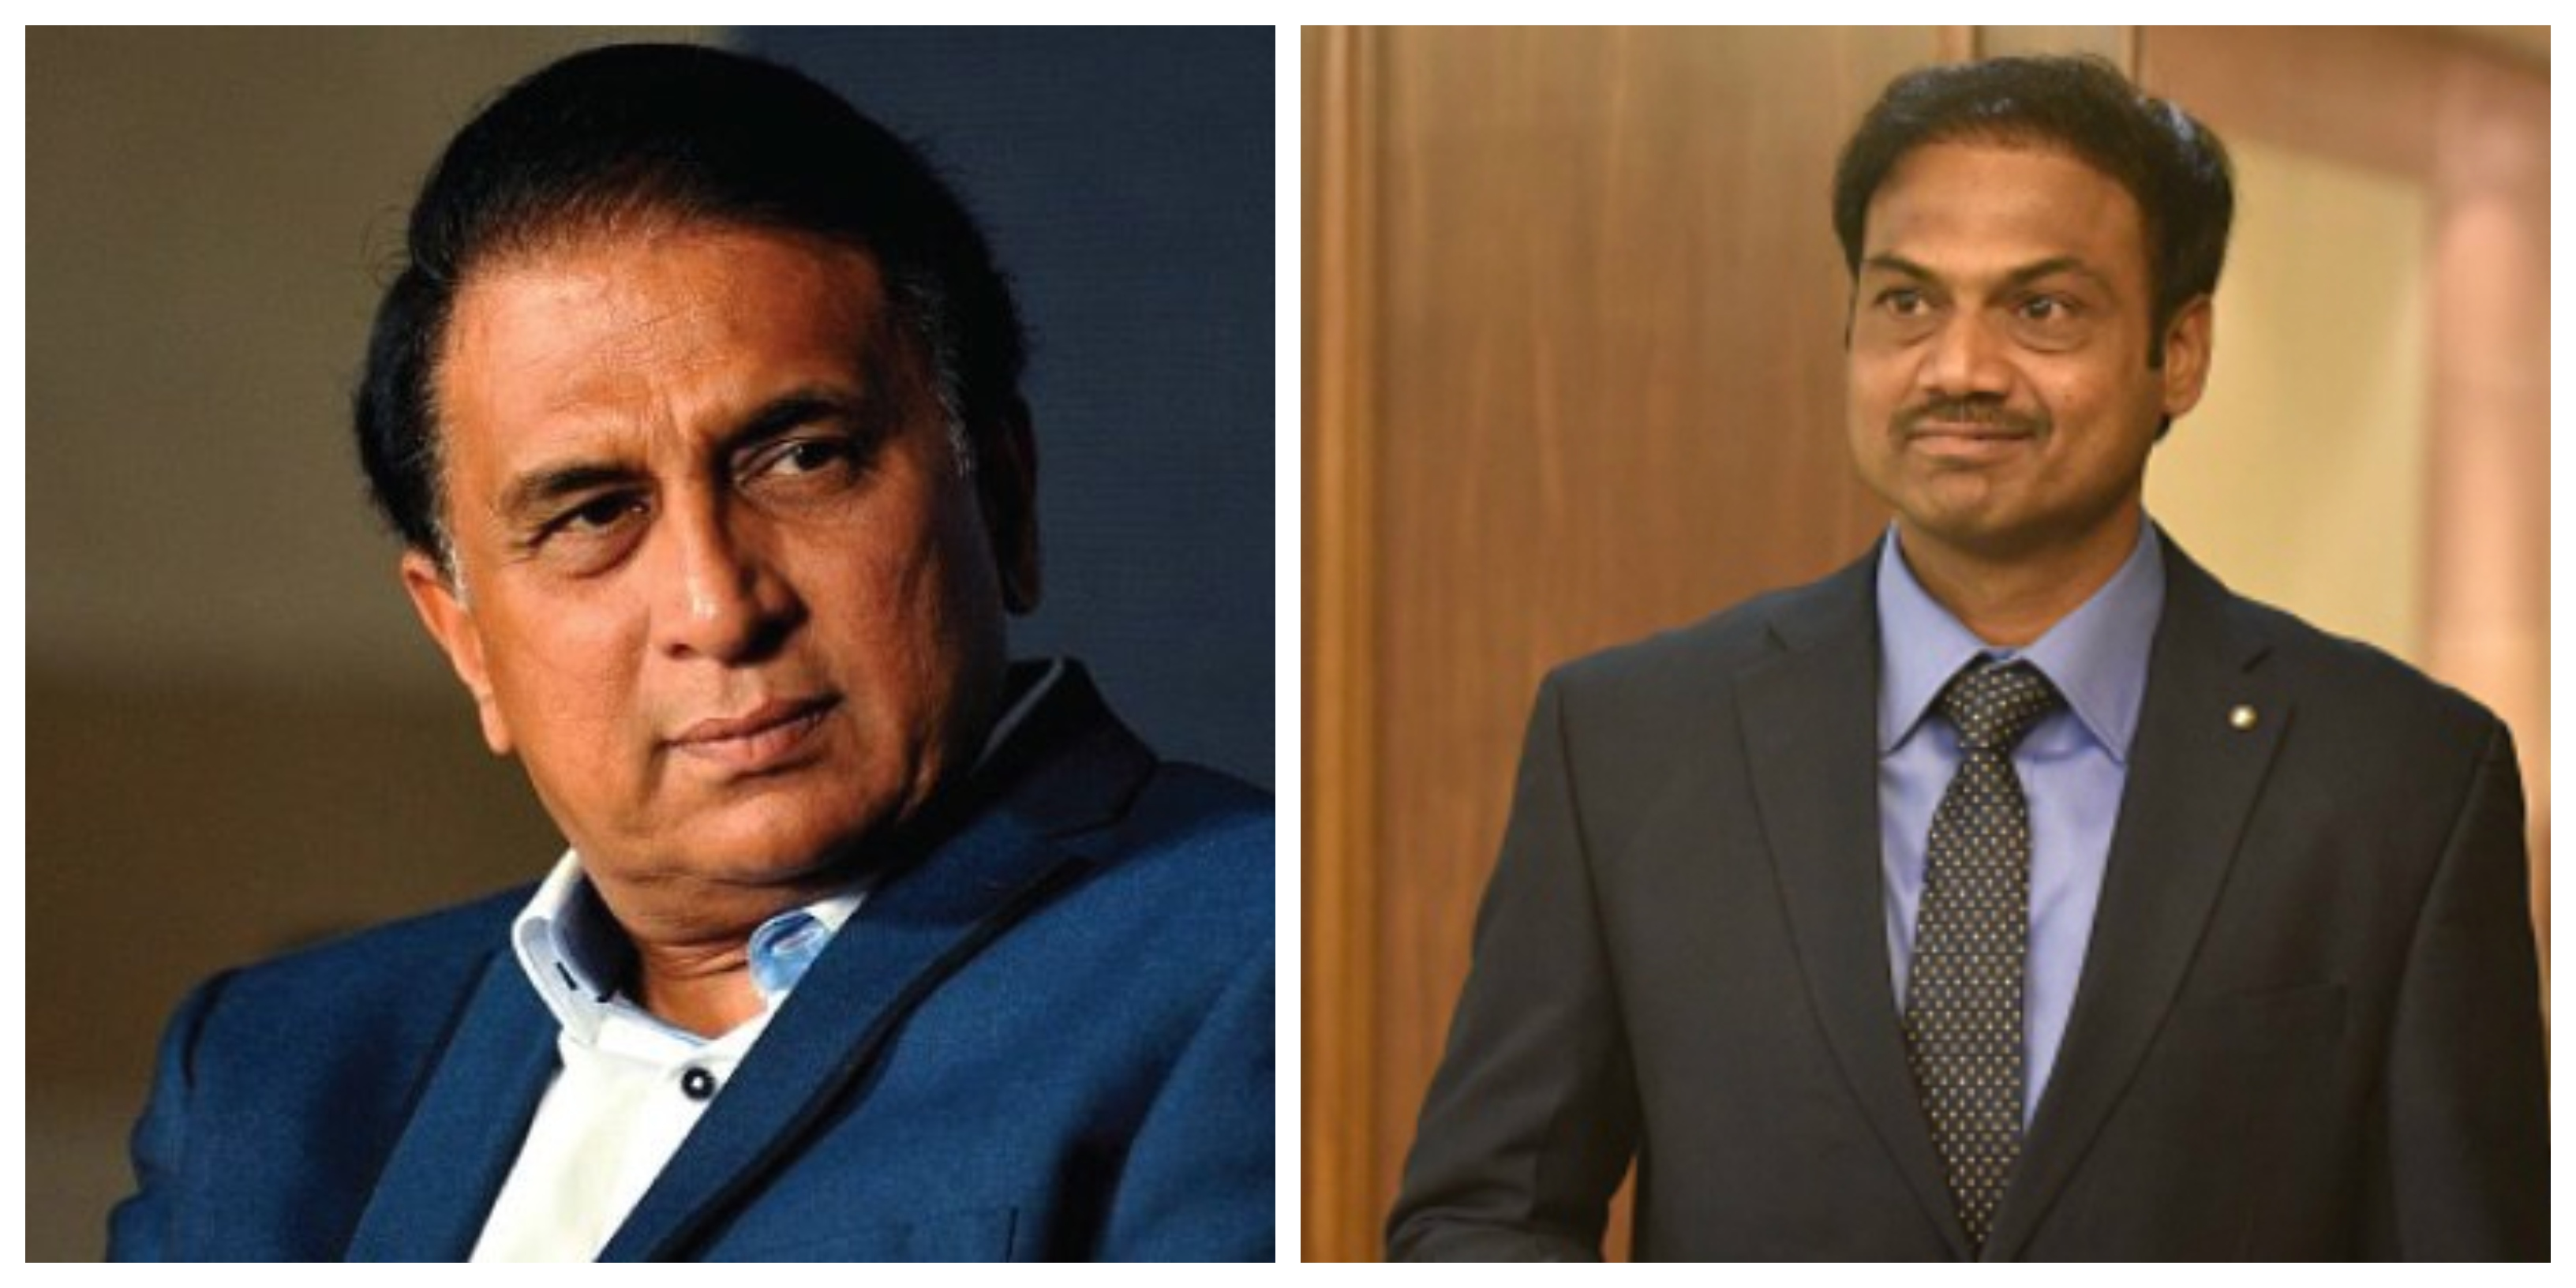 Sunil Gavaskar has said that chairman of selectors should be present on tours with the Indian Team.